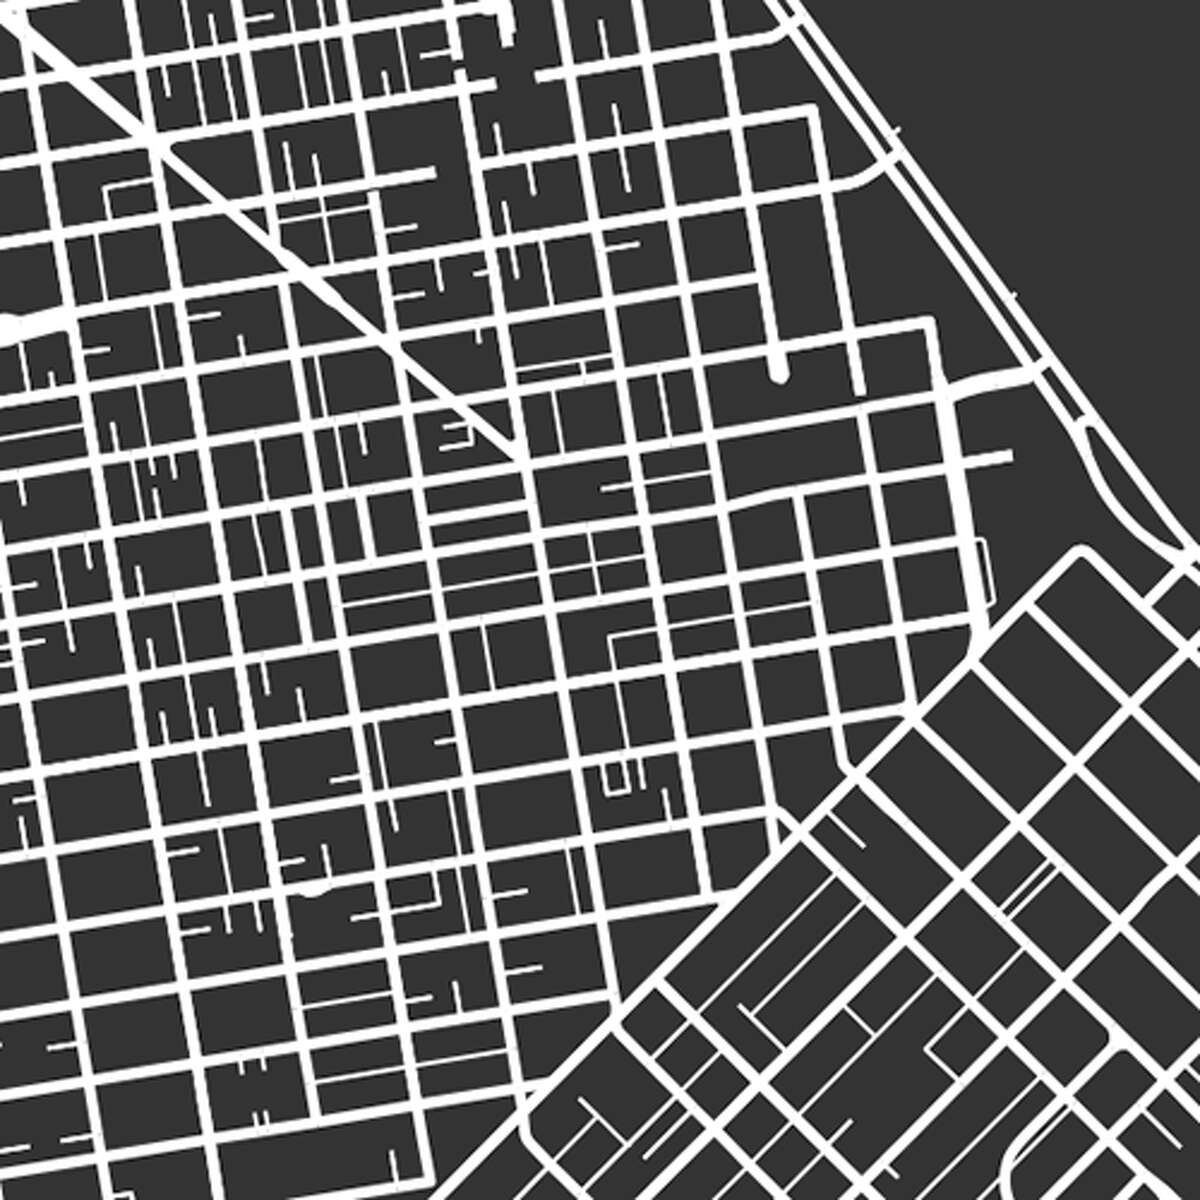 GALLERY:Square-mile maps show cities' differences from above San Francisco Geoff Boeing's square-mile maps demonstrate the diversity of global cities' street patterns.